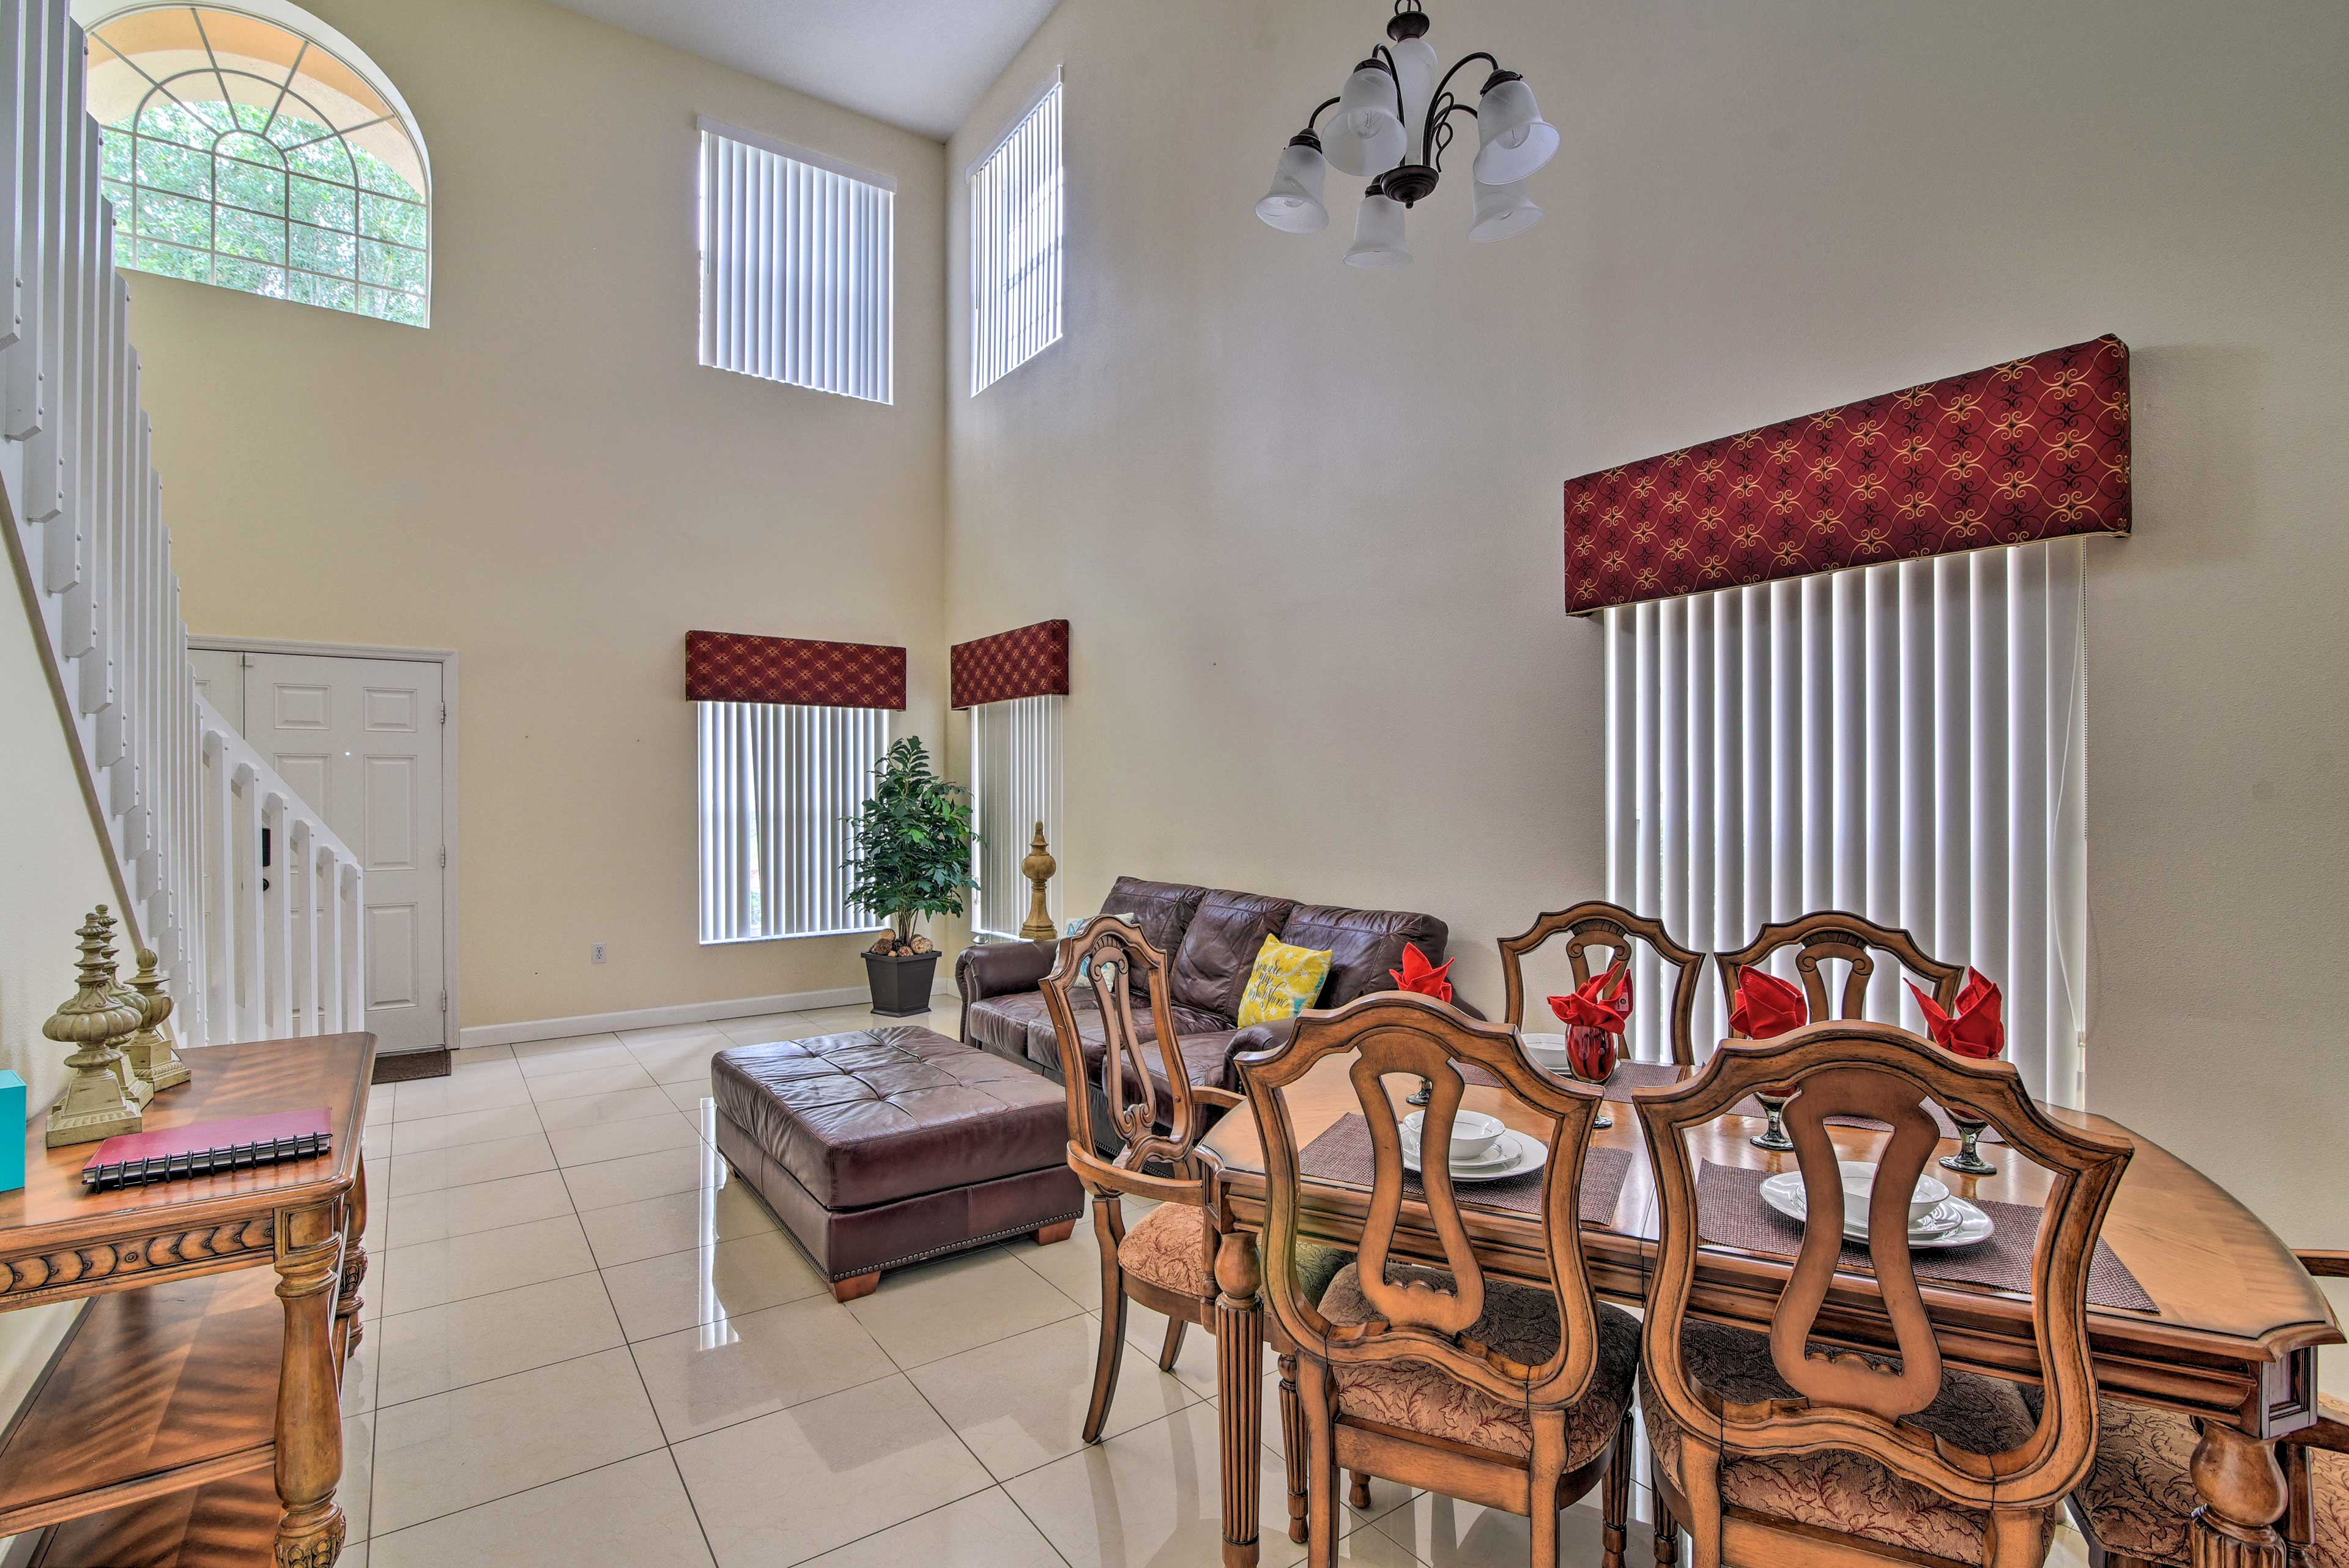 High ceilings give the house a spacious and airy feel.